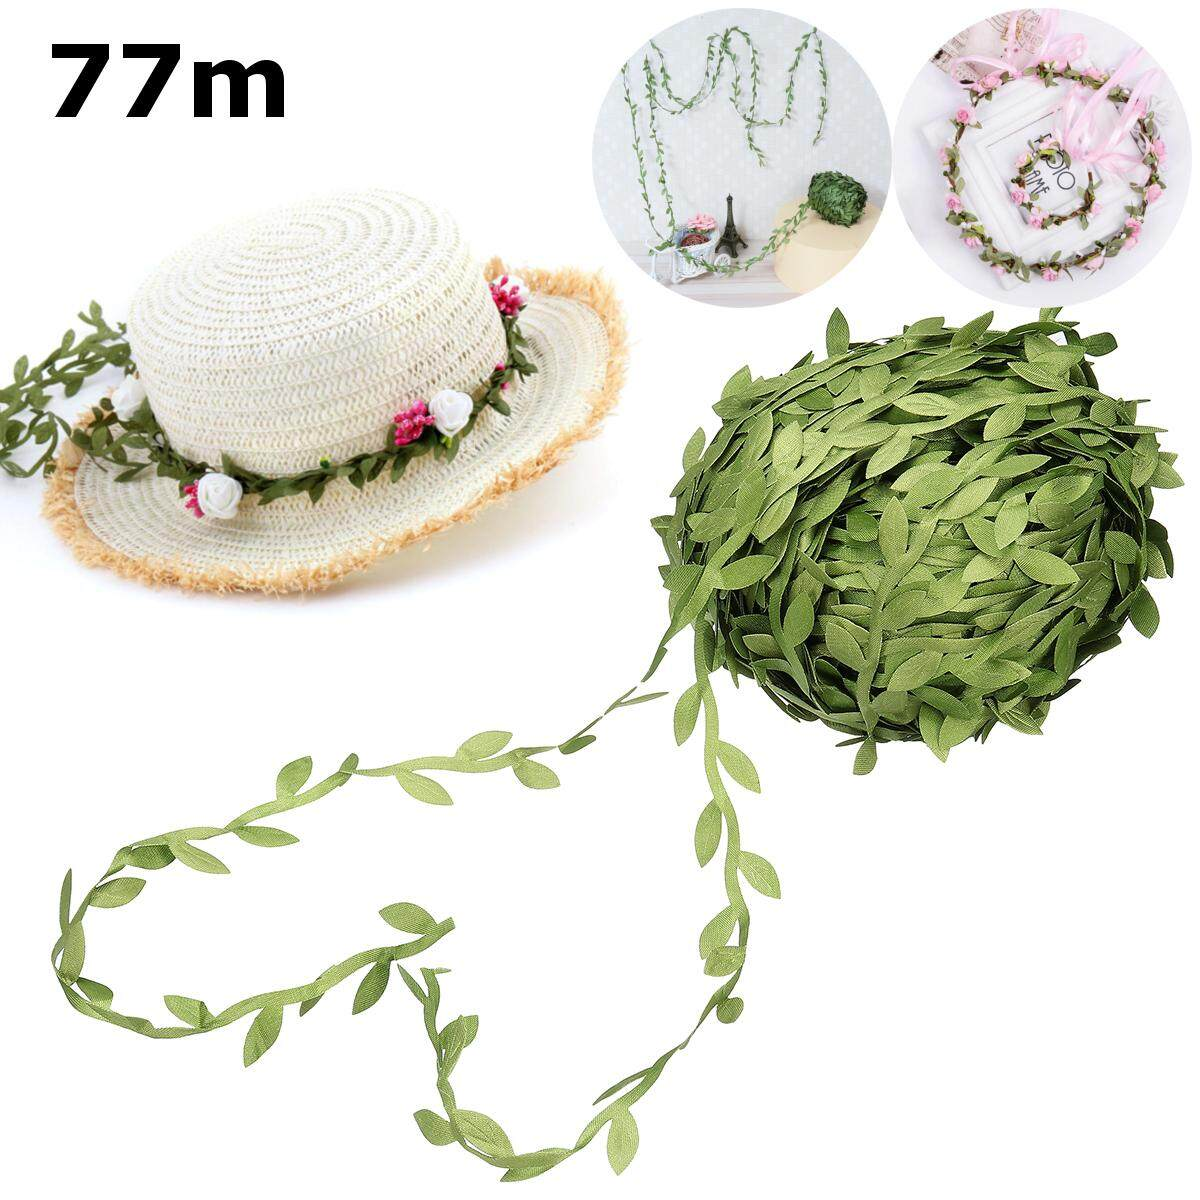 77M Artificial Ivy Leaf Garland Plants Vine Fake Green Leaves Party Home Decor